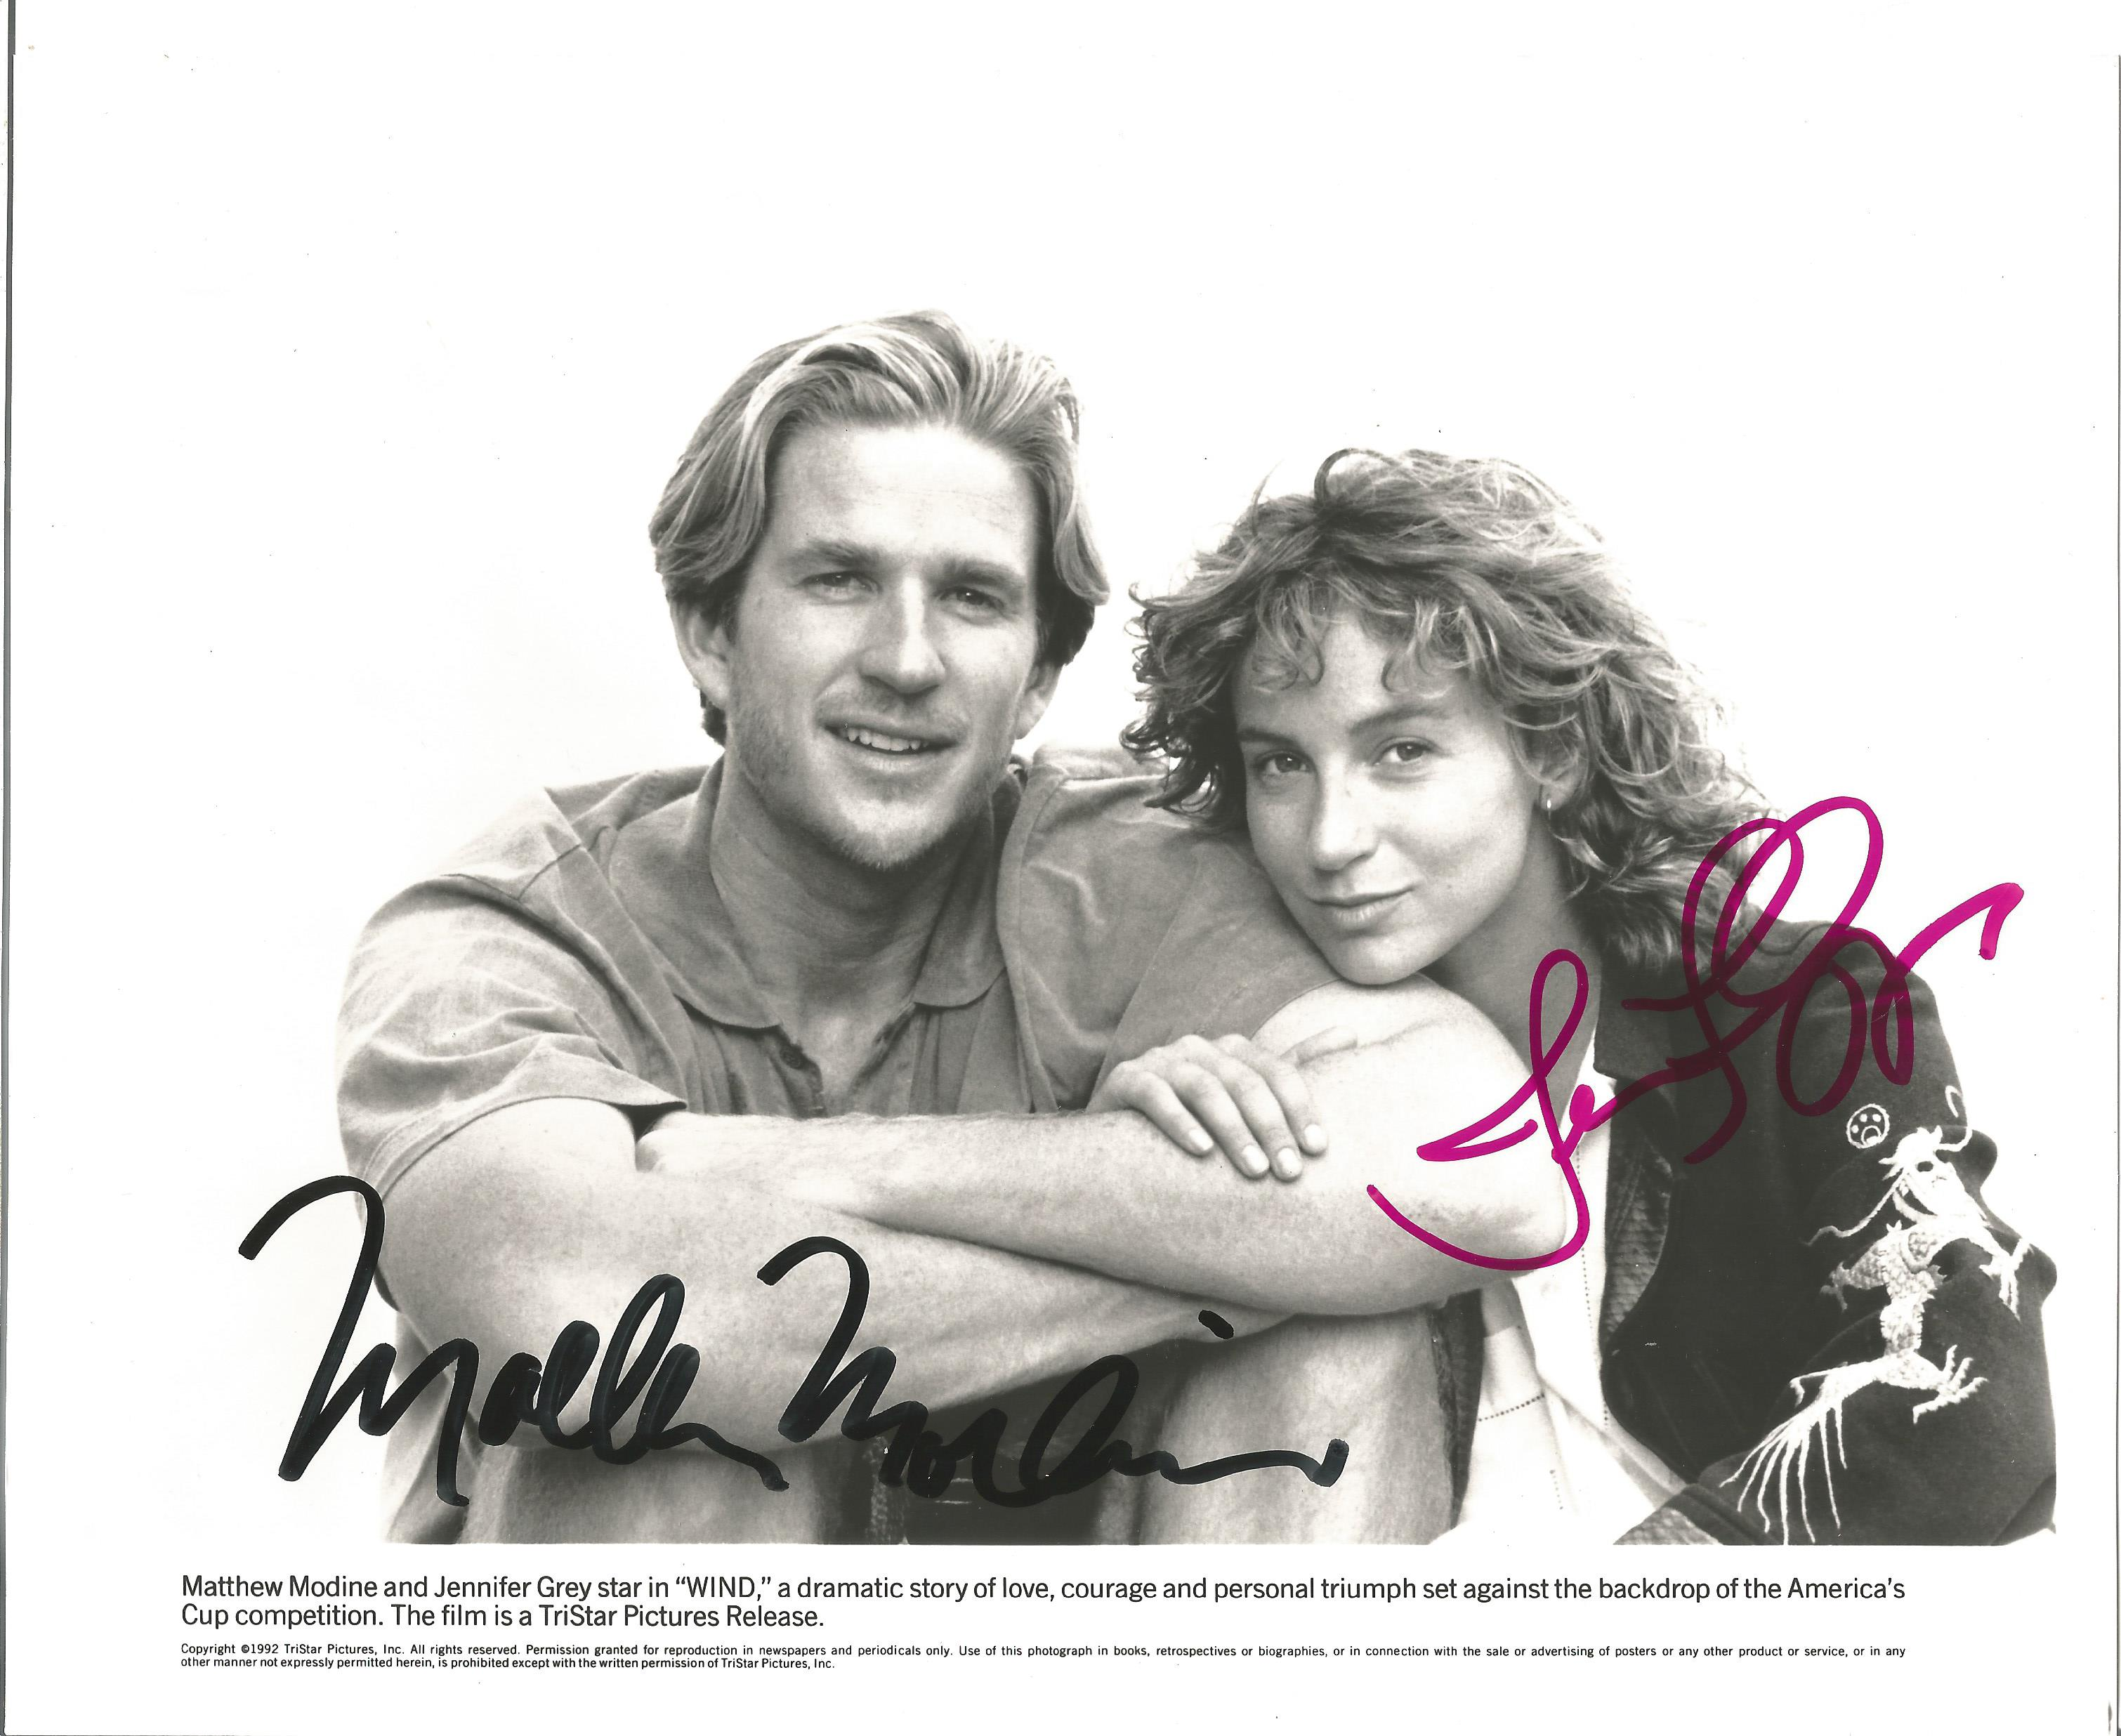 Actor Matthew Modine and Actress Jennifer Grey signed 10x8 black and white promotional image from